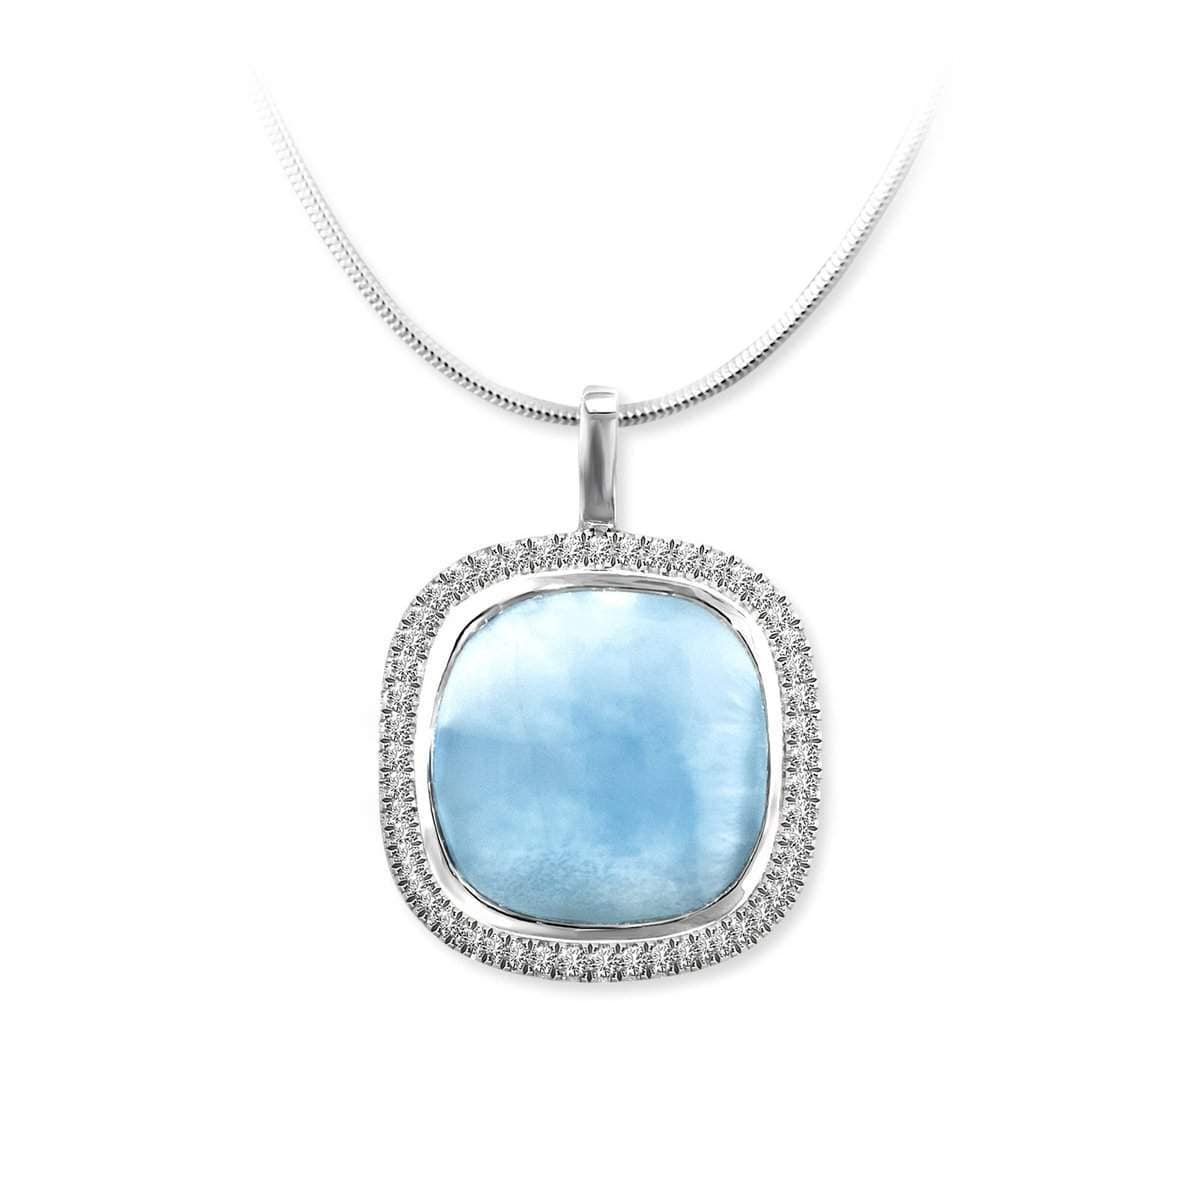 Clarity Cushion White Sapphire Necklace - Nclar01-00-Marahlago Larimar-Renee Taylor Gallery